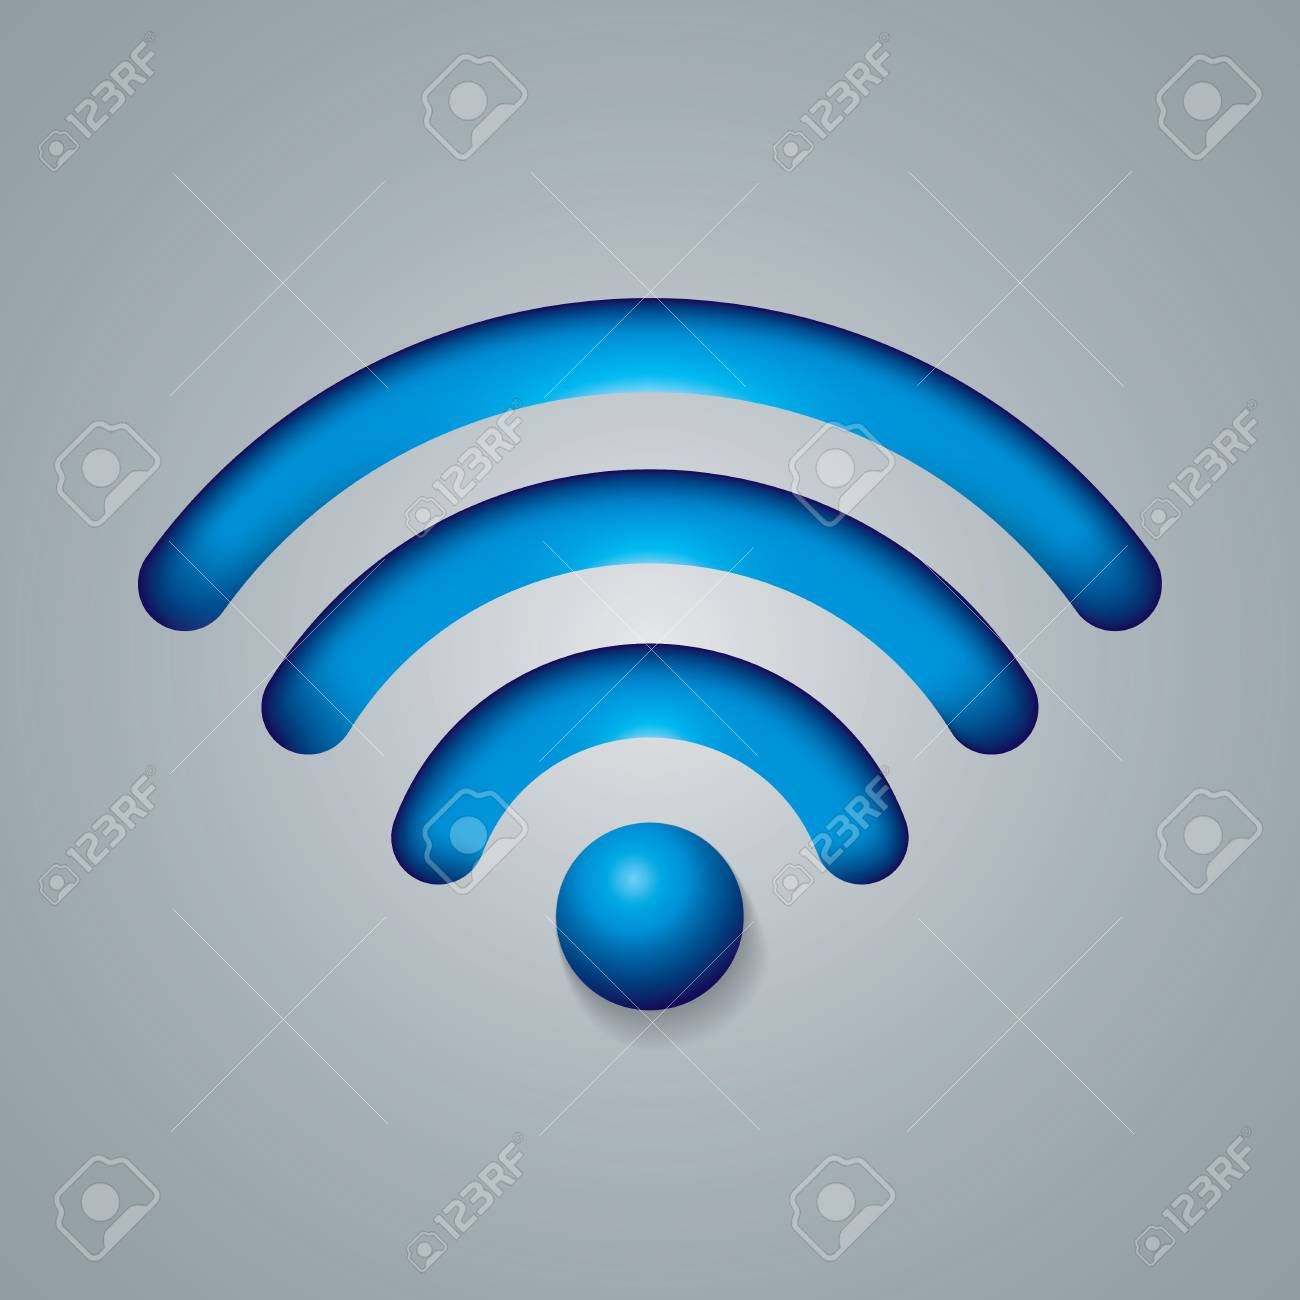 Wireless Network Symbol Object Blue Colored Consisting Of Four